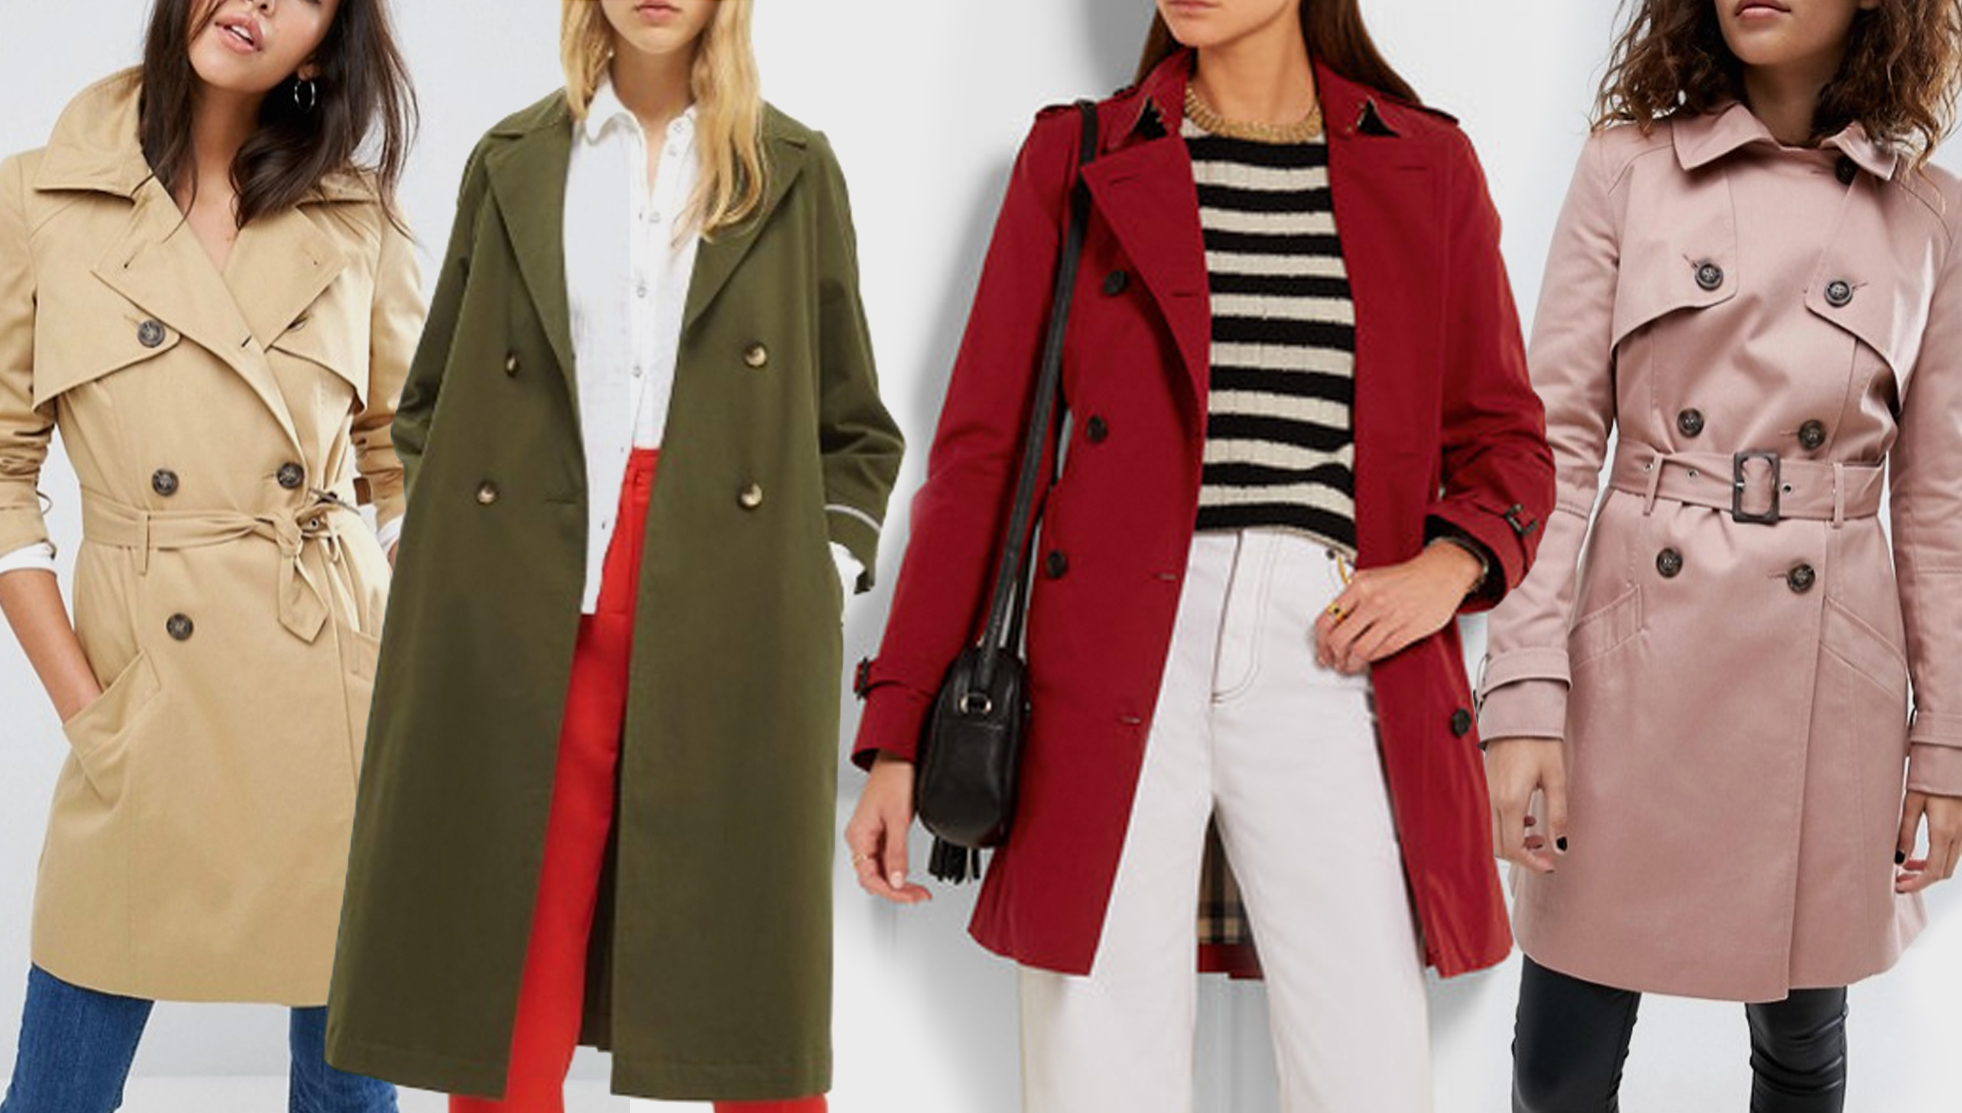 trench coats blair eadie atlantic-pacific